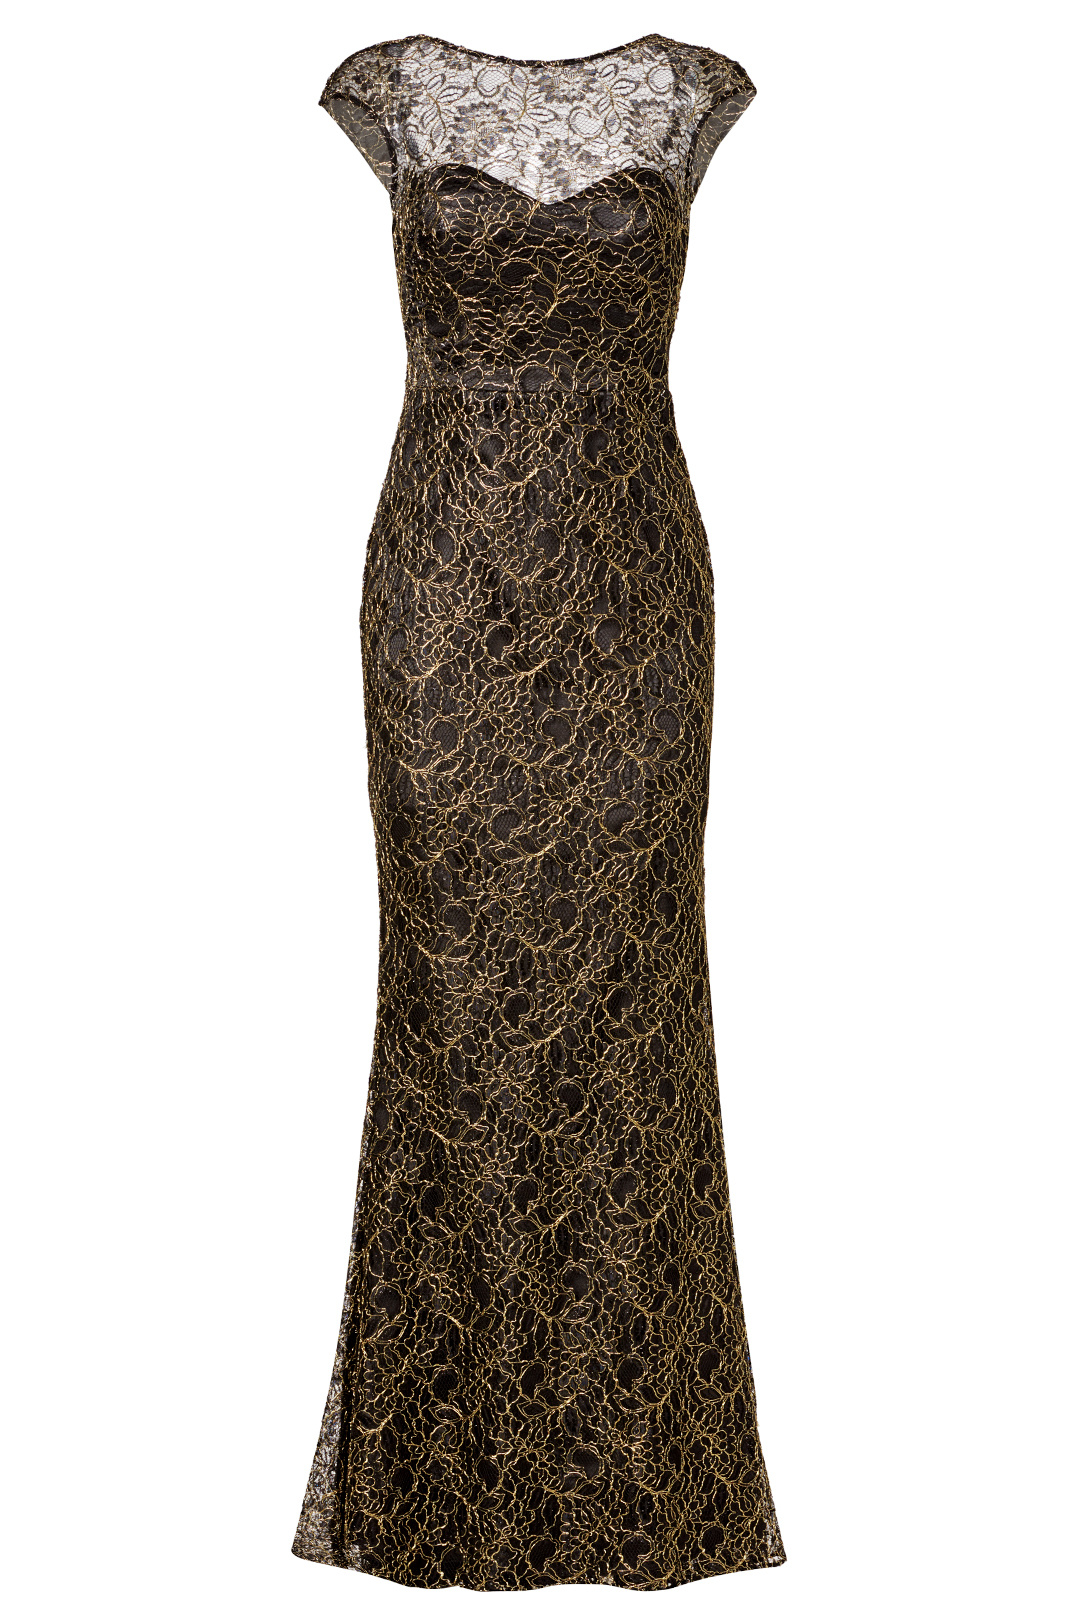 9e572f15ef Details about Theia Gold Black Cap Sleeve Lace Women s Size 6 Sweetheart Gown  Dress  895-  392